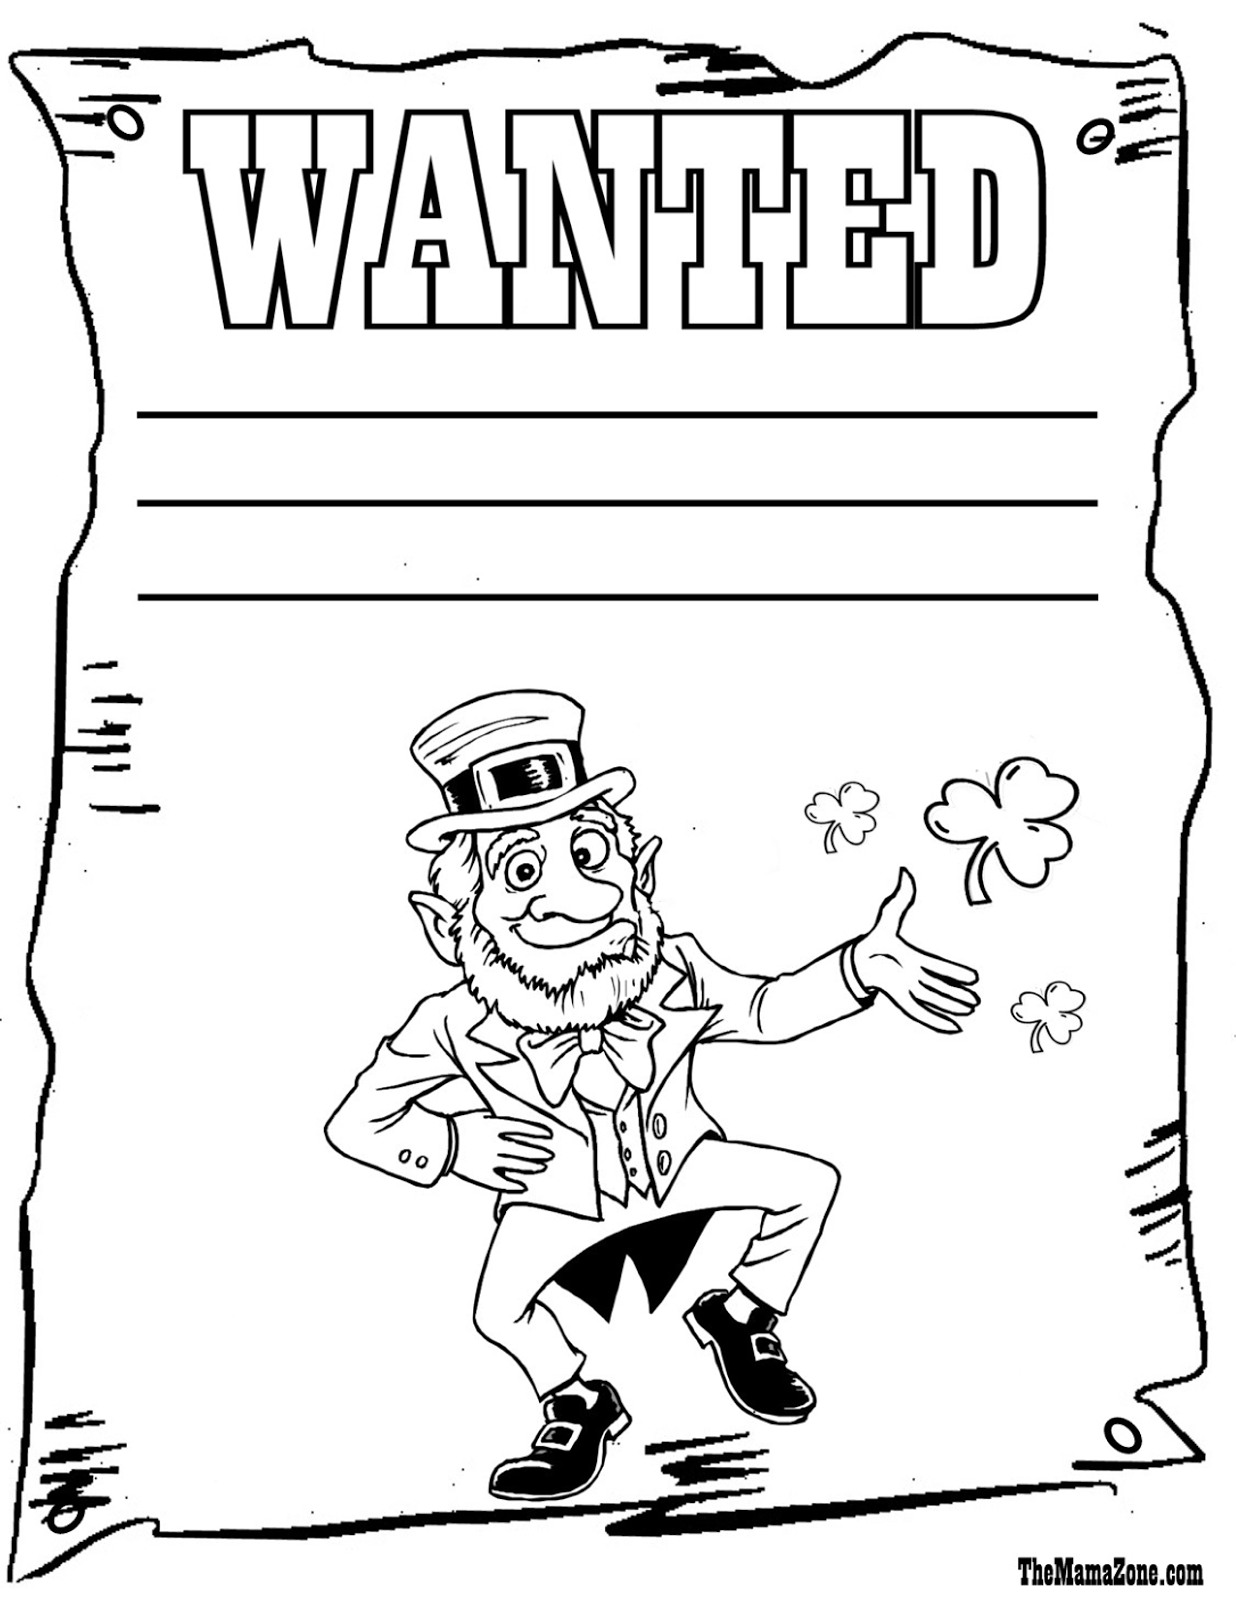 *Leprechaun Wanted Coloring Page